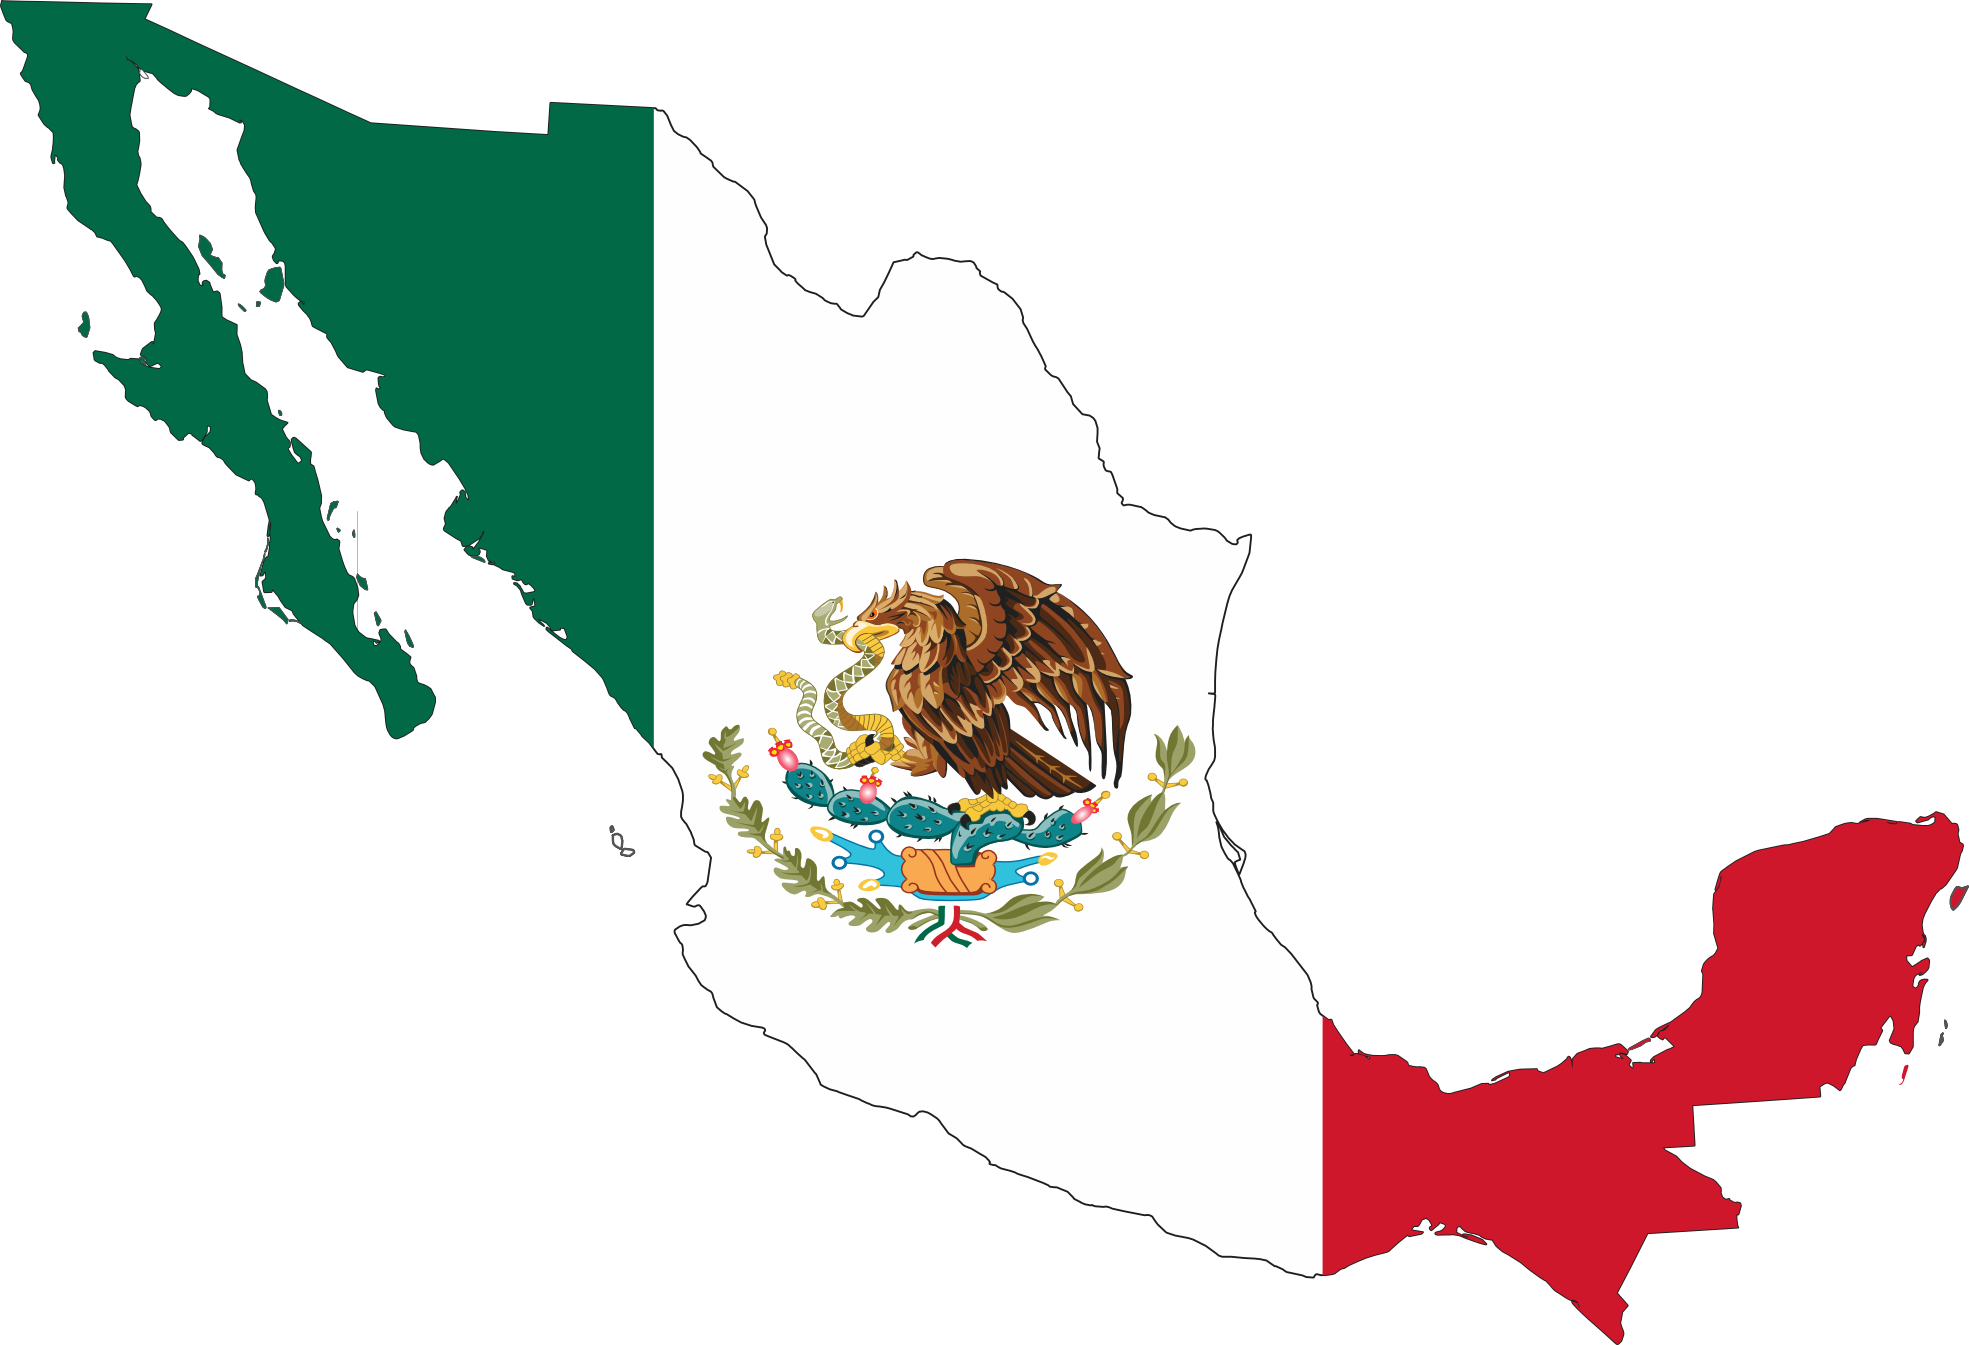 Charra drawing mexican. Mexico flag drawings map